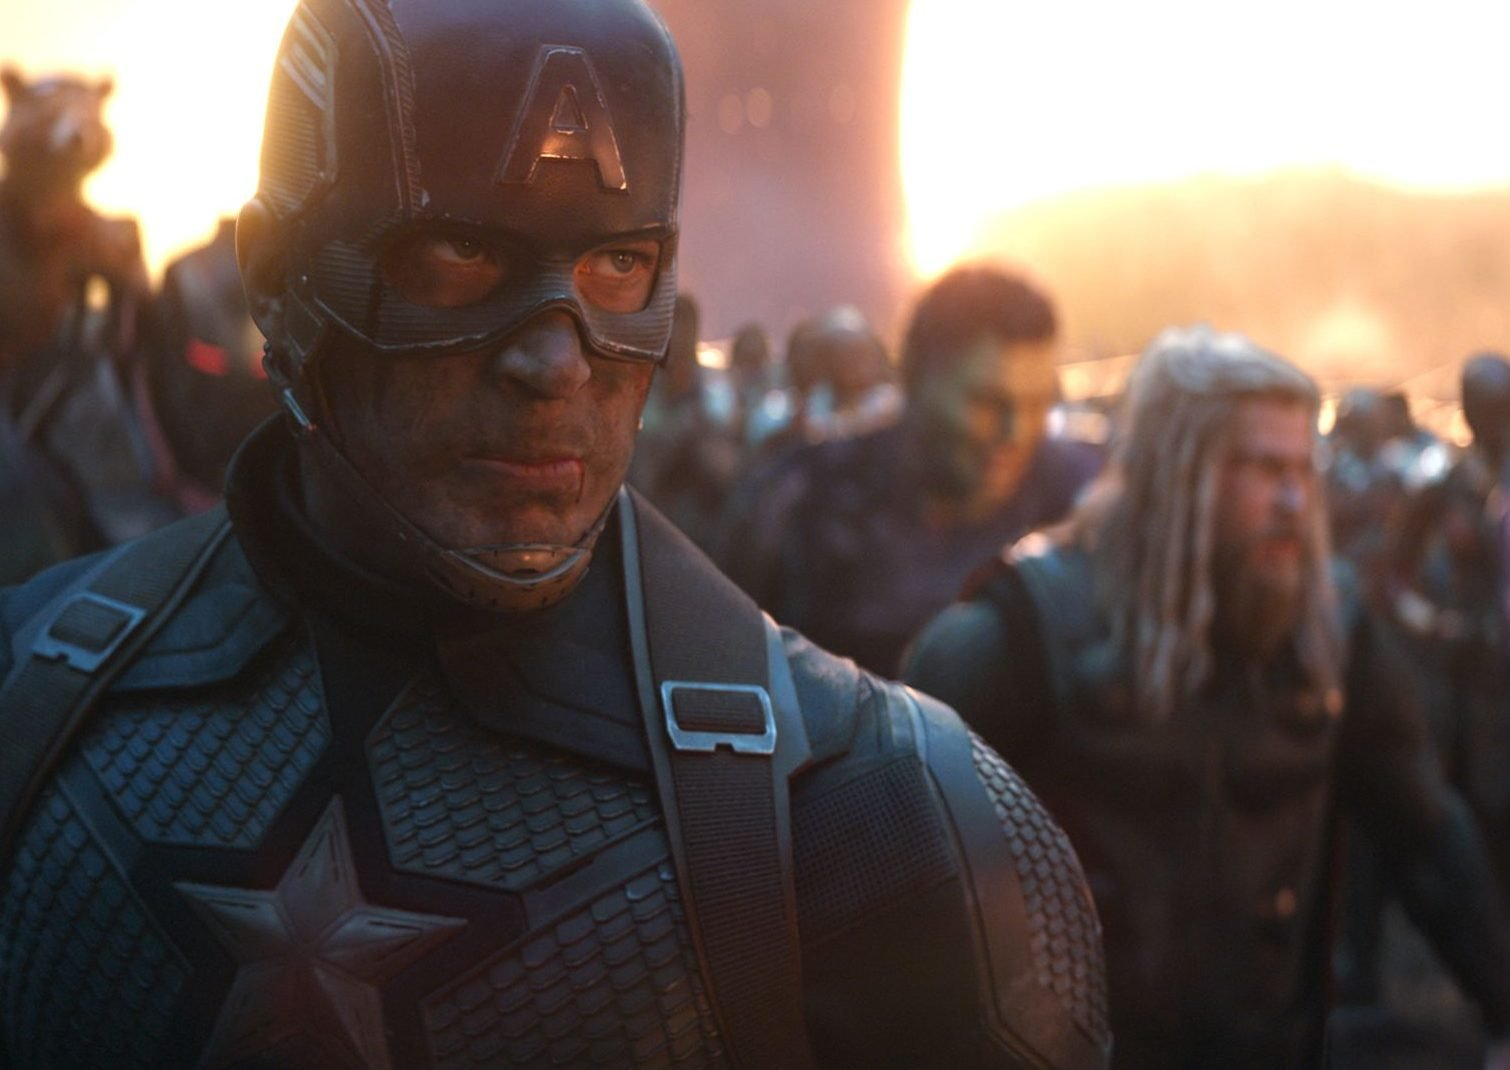 avengers endgame chris evans captain america 1591612846 e1628063154364 25 Things You Didn't Know About Avengers: Endgame